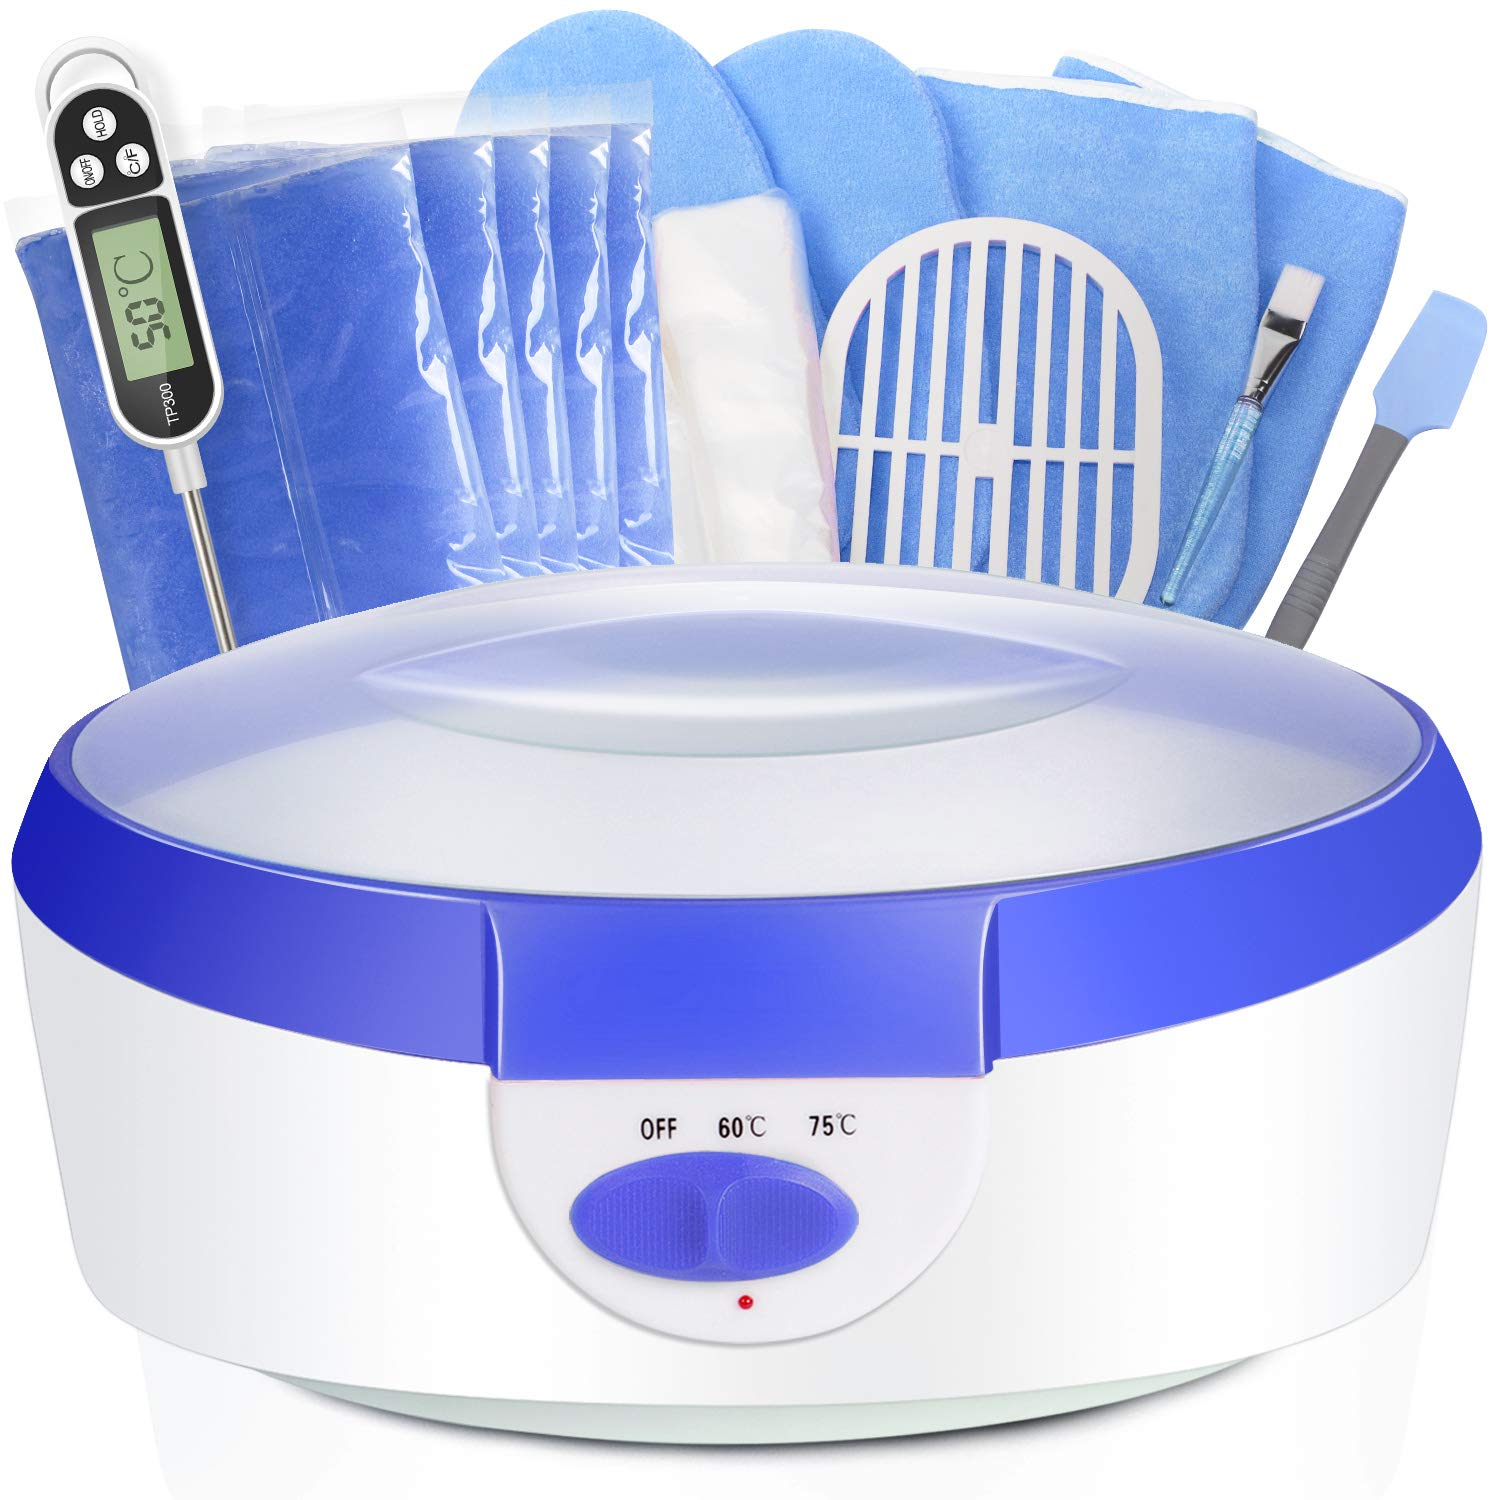 Paraffin Wax for Hands and Feet Ejiubas Paraffin Wax Warmer 2500ml Quick-Heating Paraffin Wax Machine Moisturizing Kit with Paraffin Wax Refill Thermal Mitts Gloves Silicone Brush Paraffin Bath Blue by Ejiubas